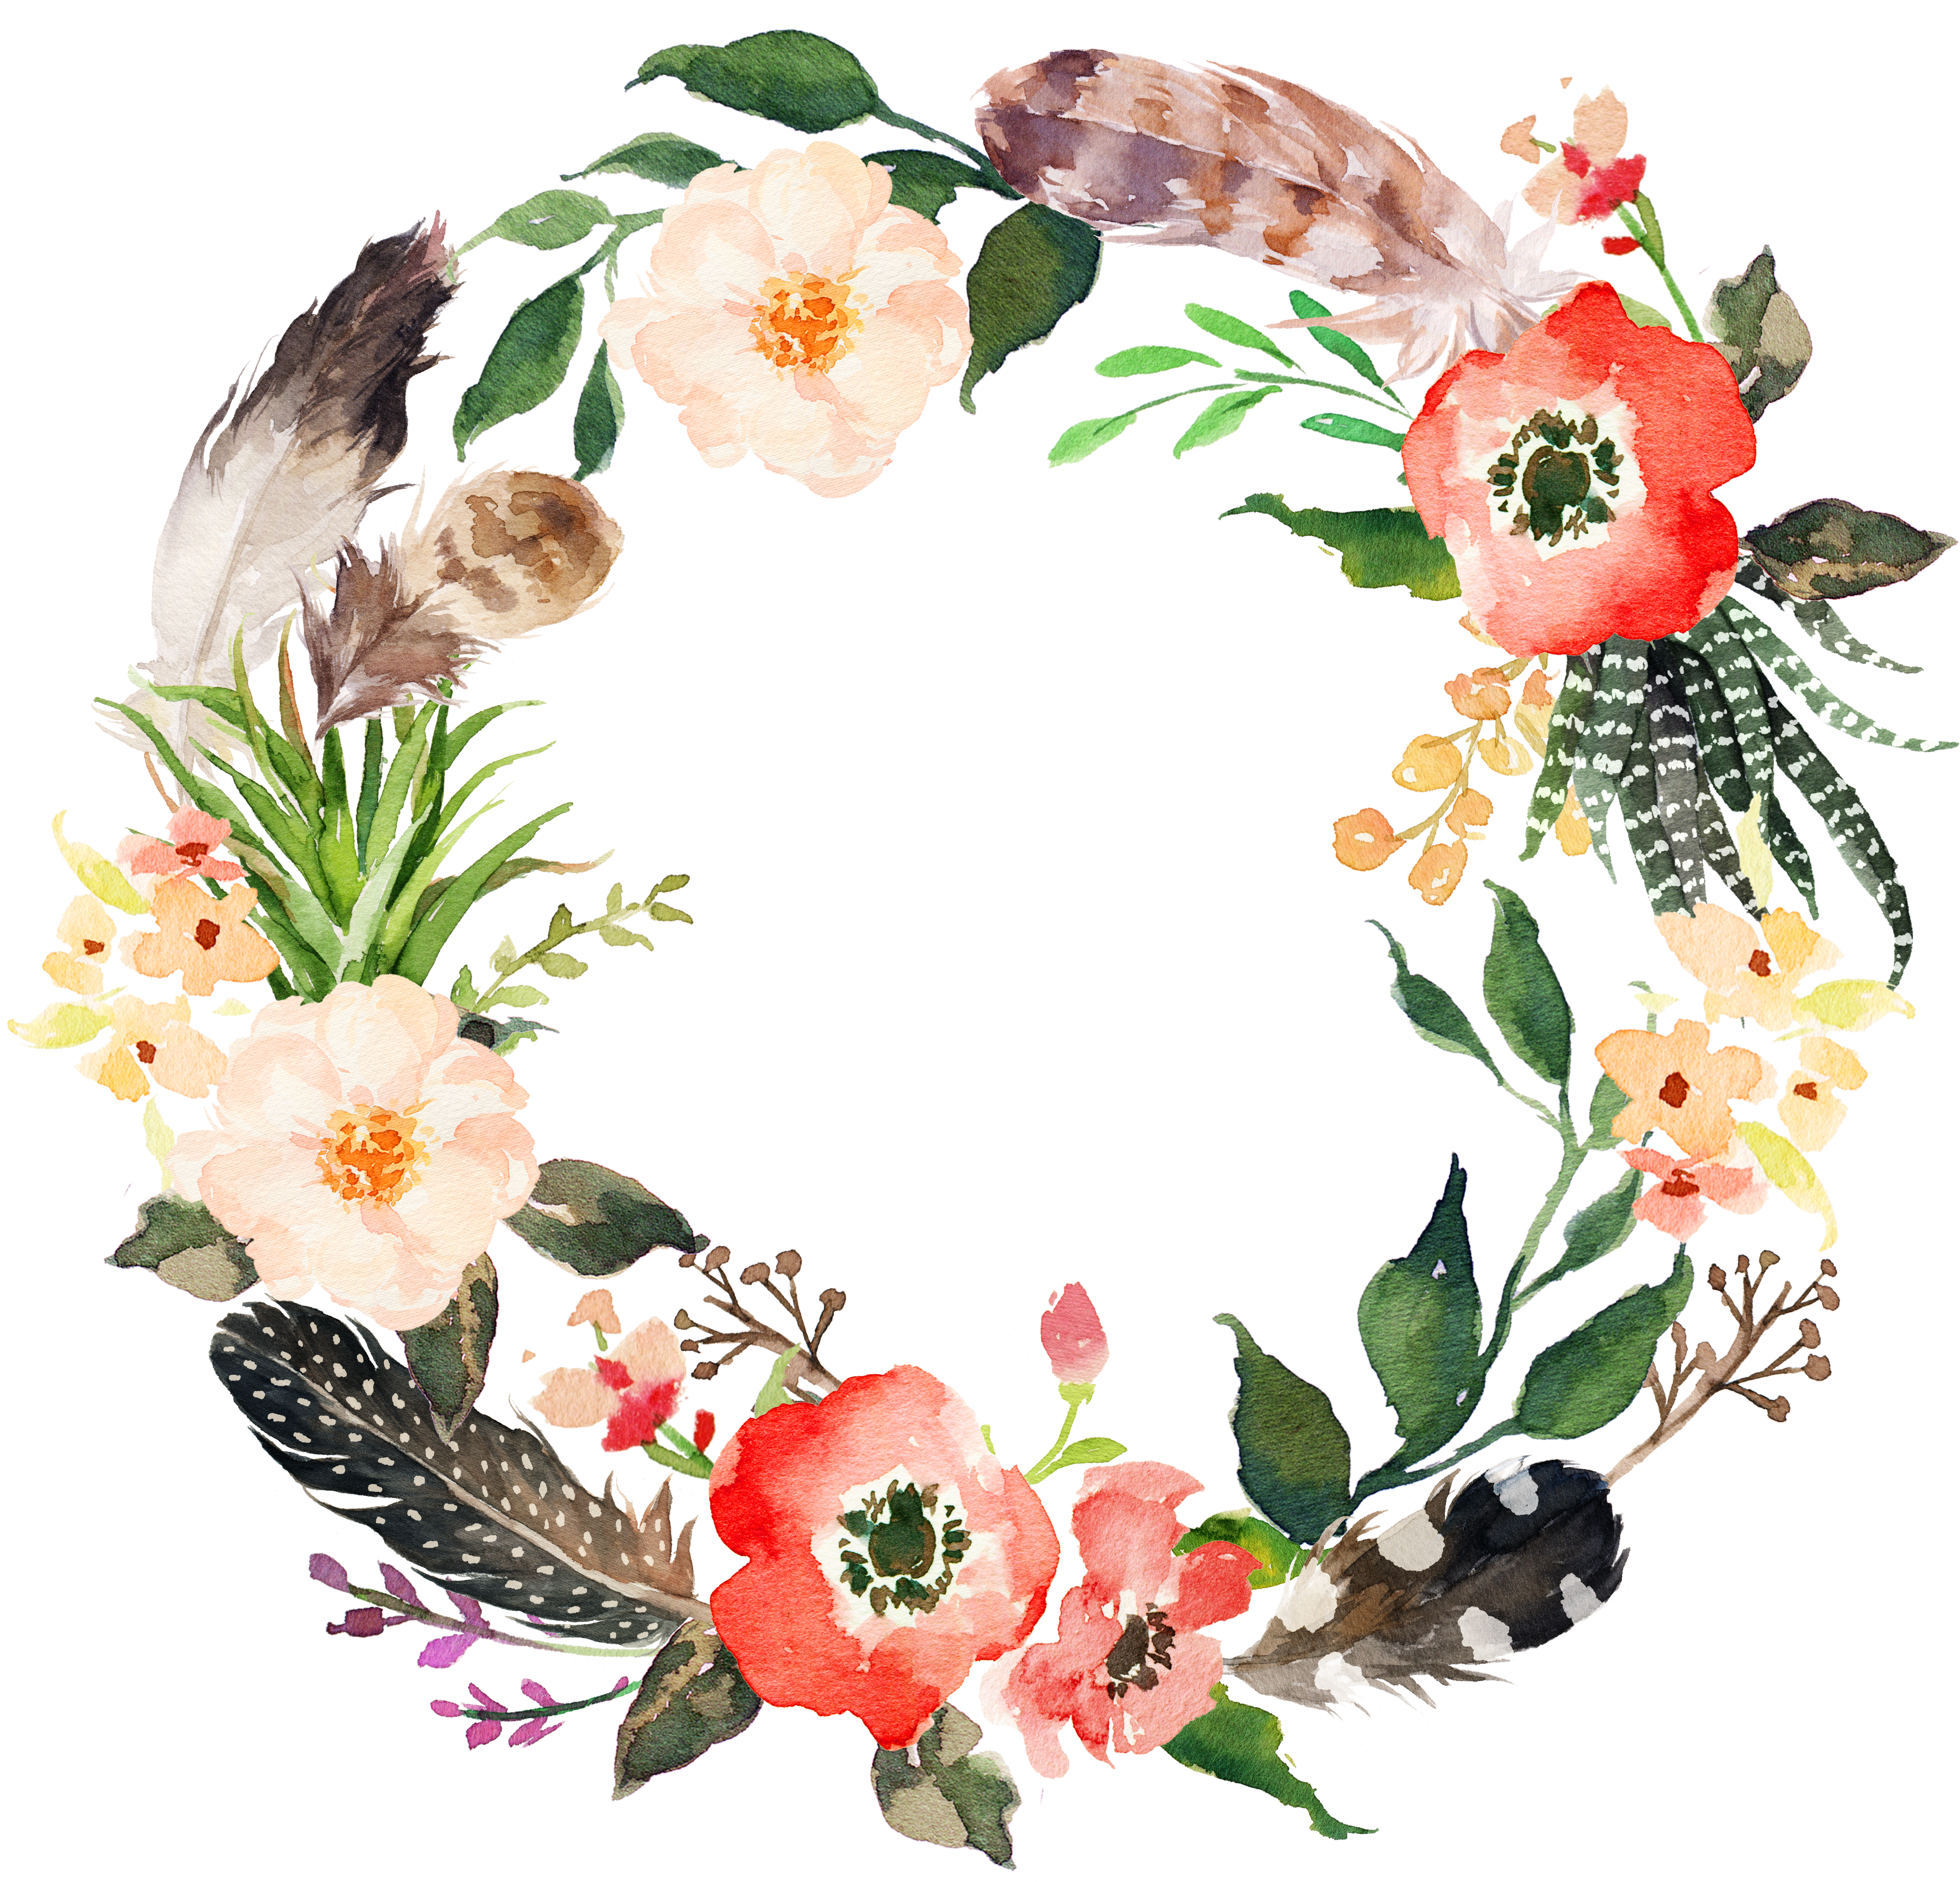 Invitation Wreath Watercolor Painting - Watercolour Floral Wreath Transparent Png Clipart (3713x3541), Png Download